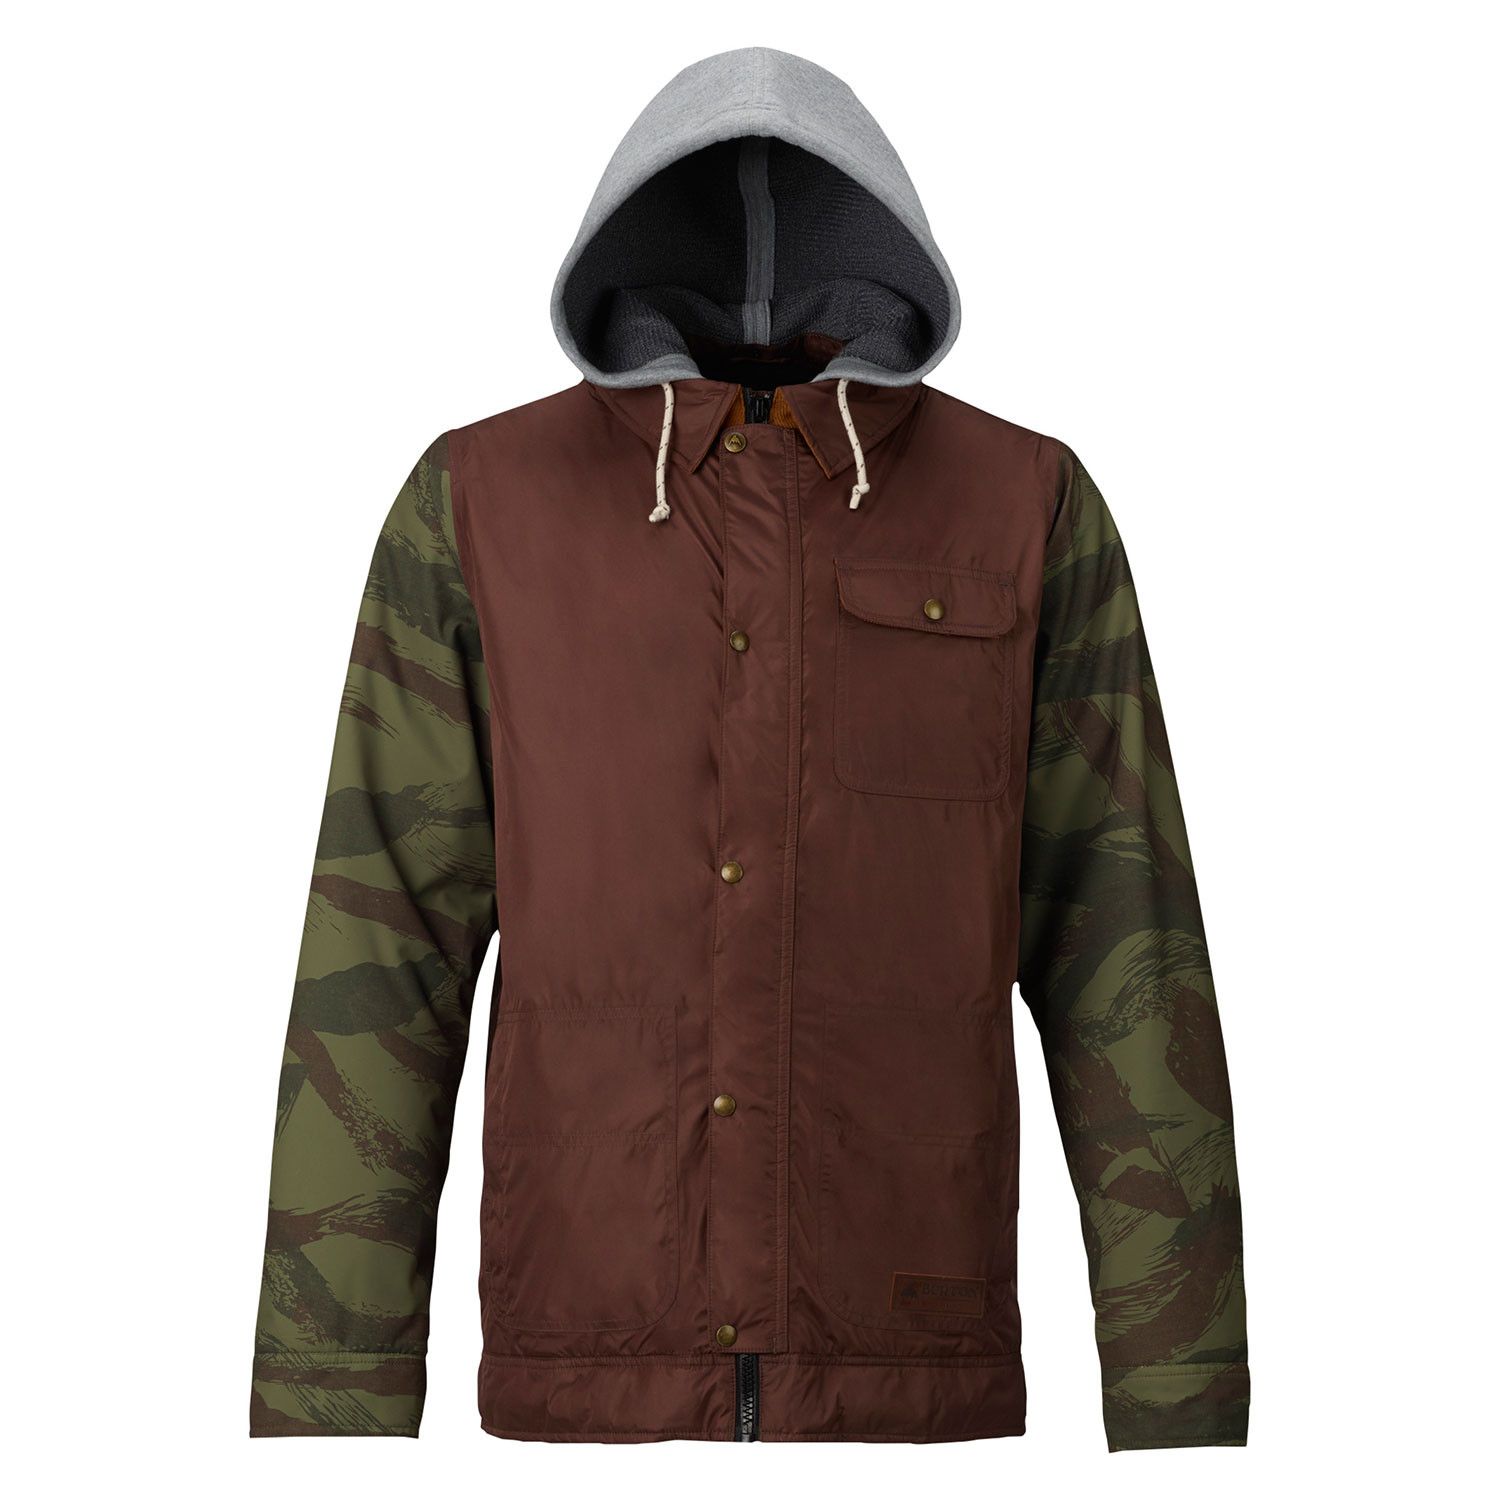 Bunda Burton Dunmore chestnut/brush camo